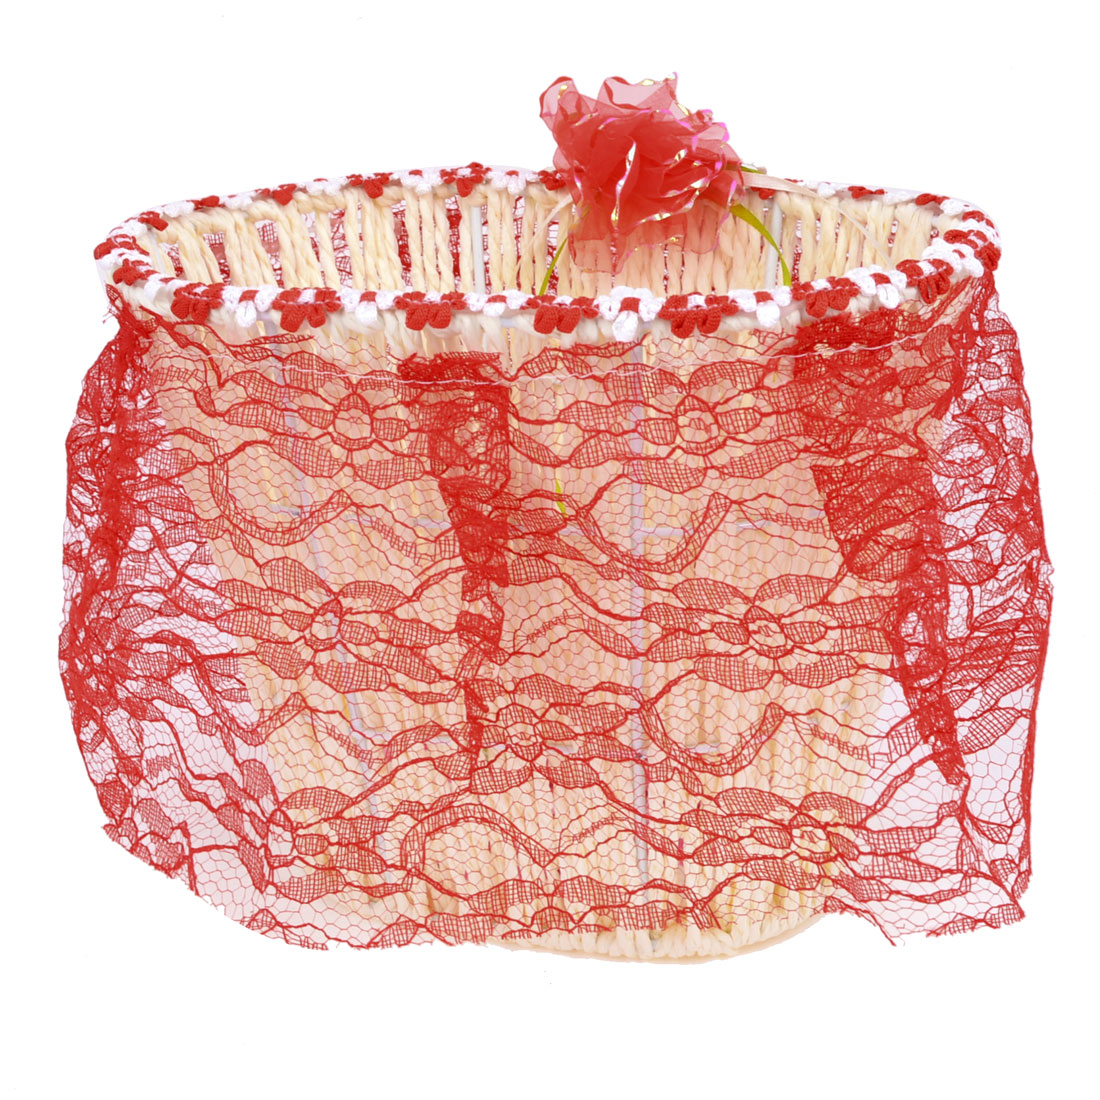 Red Flower Lace Rim Decor Straw String Metal Frame Beige Woven Storage Basket Remote Controller Holder